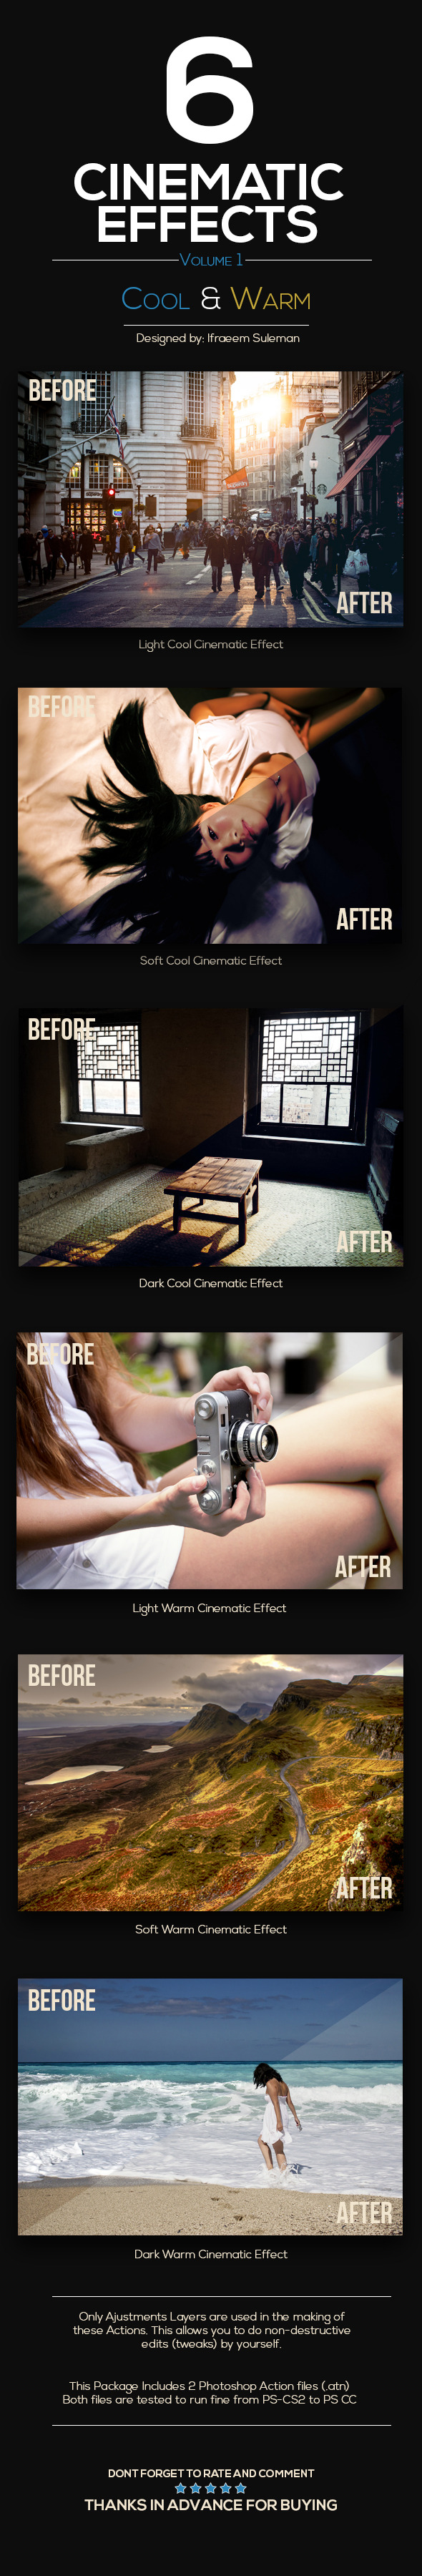 GraphicRiver 6 Cinematic Effects 10318805